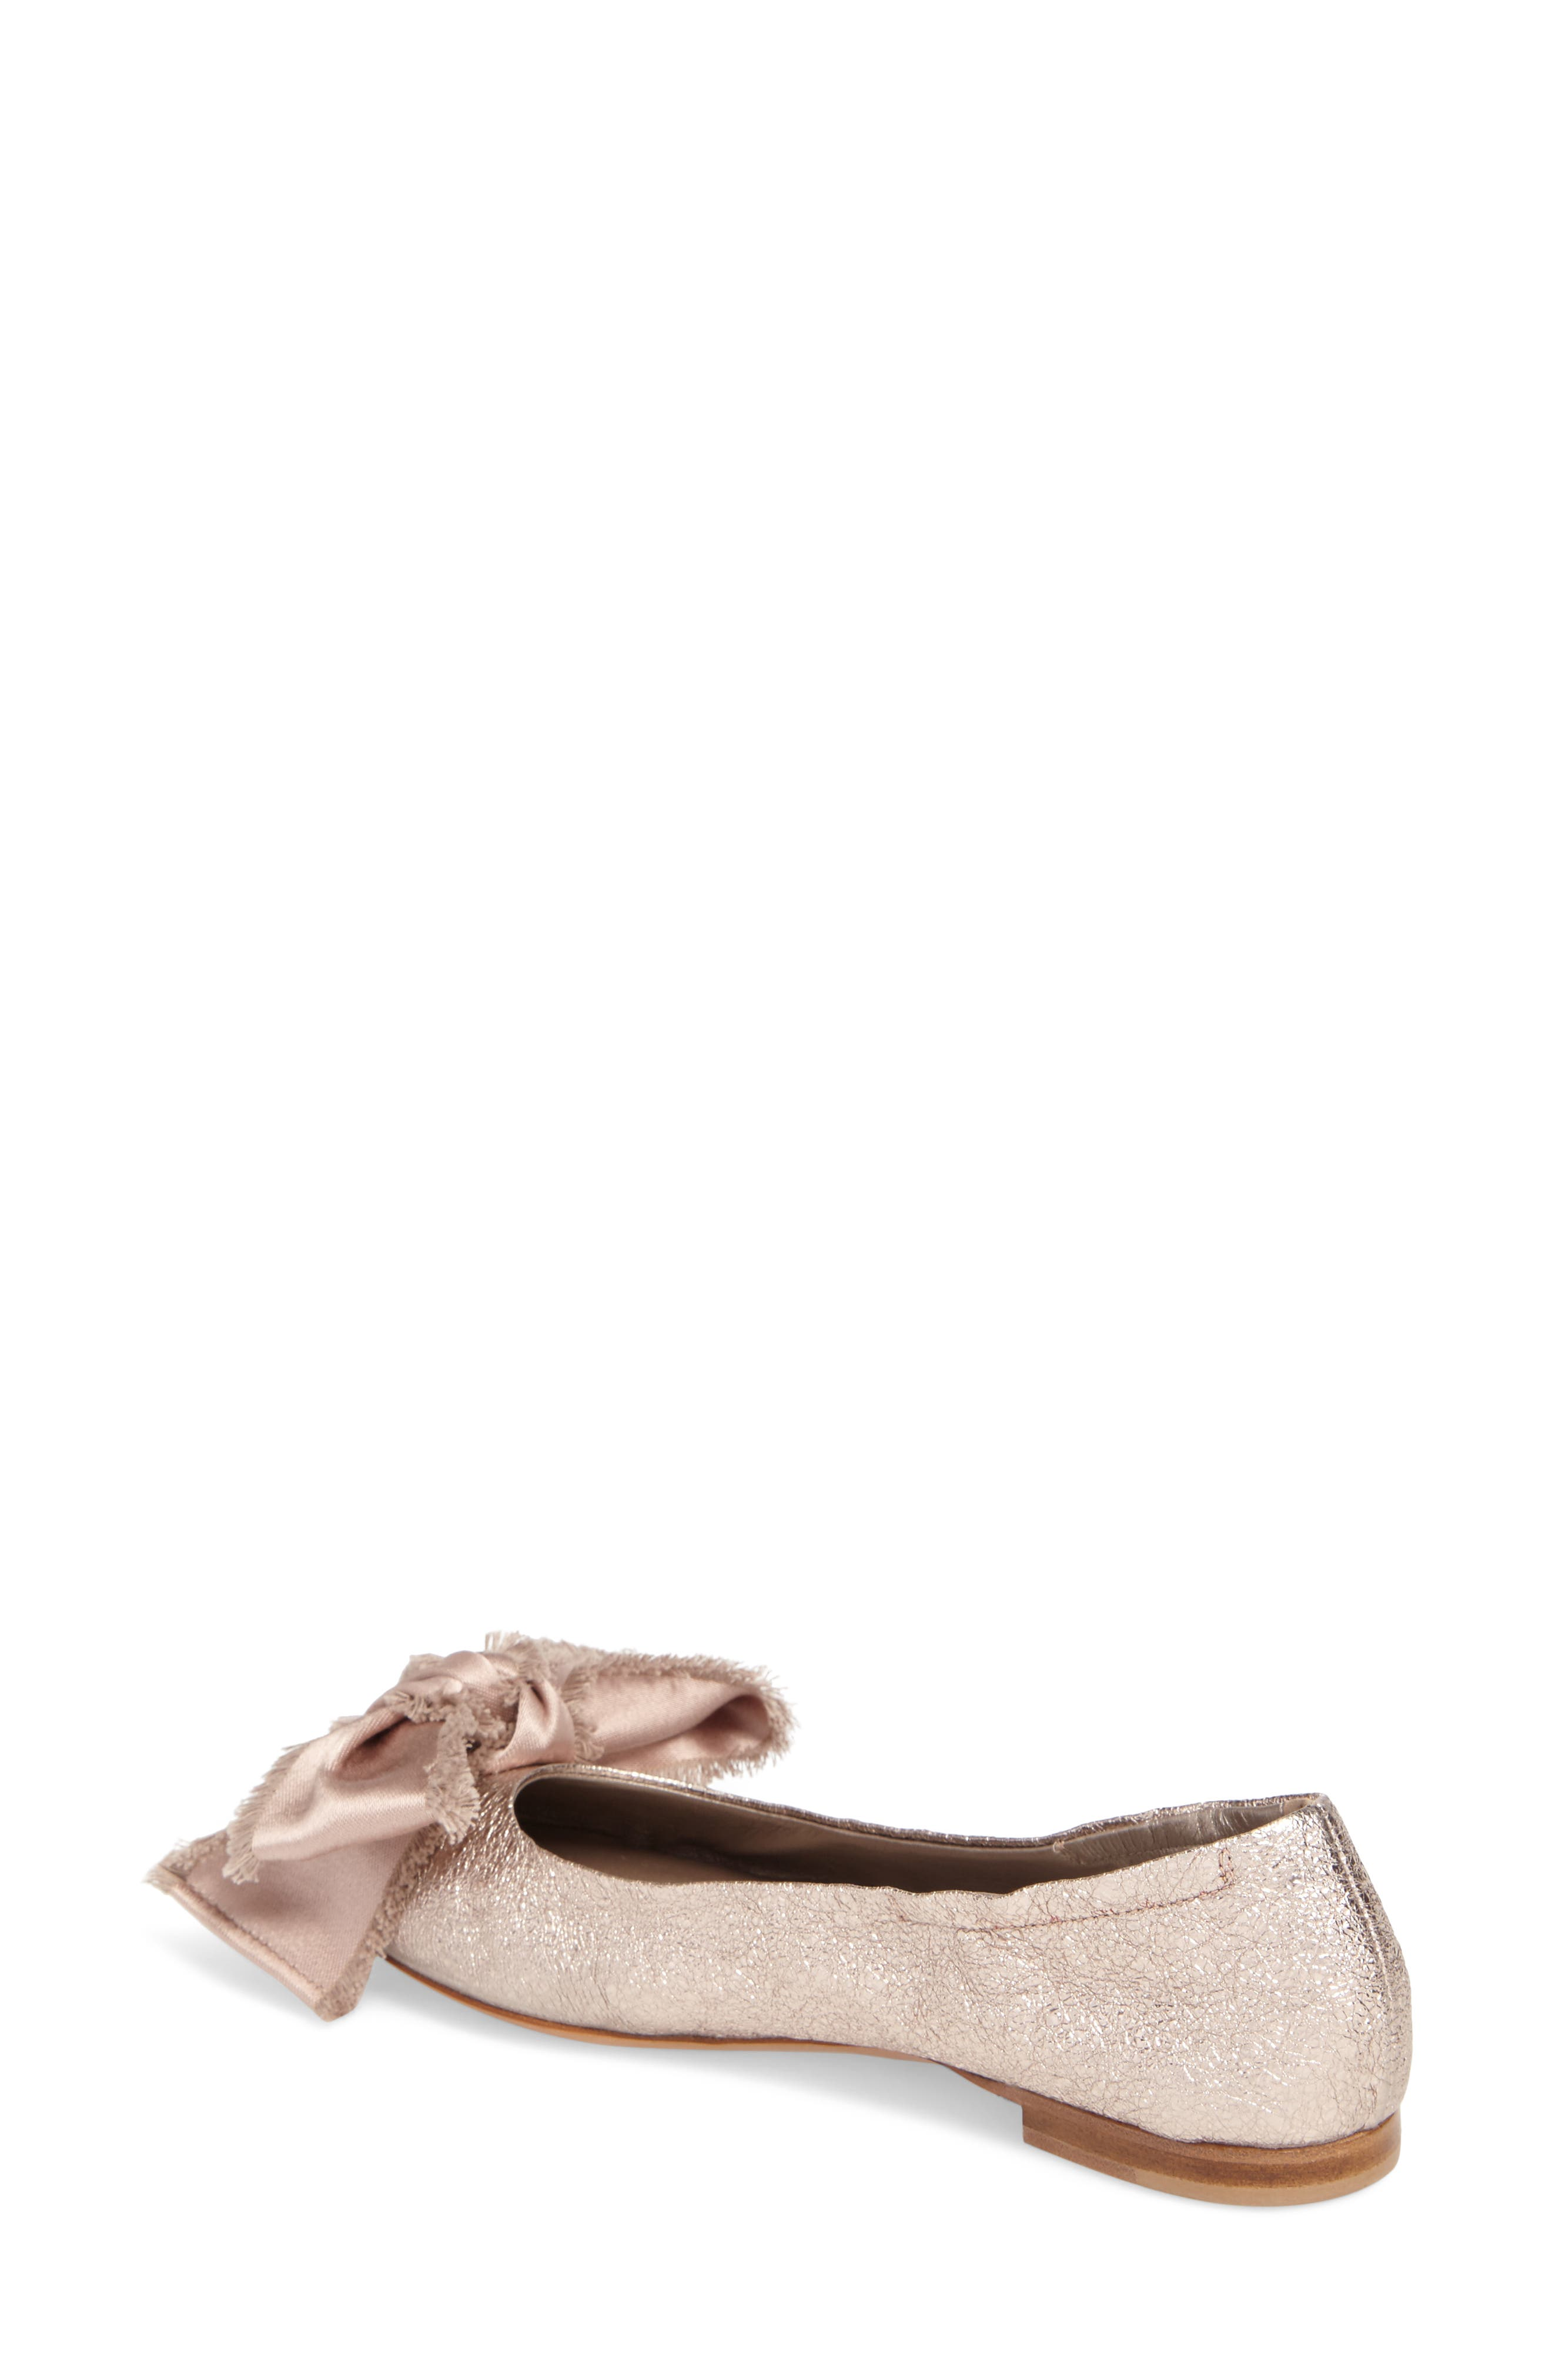 Satin Bow Ballet Flat,                             Alternate thumbnail 2, color,                             Pink Leather